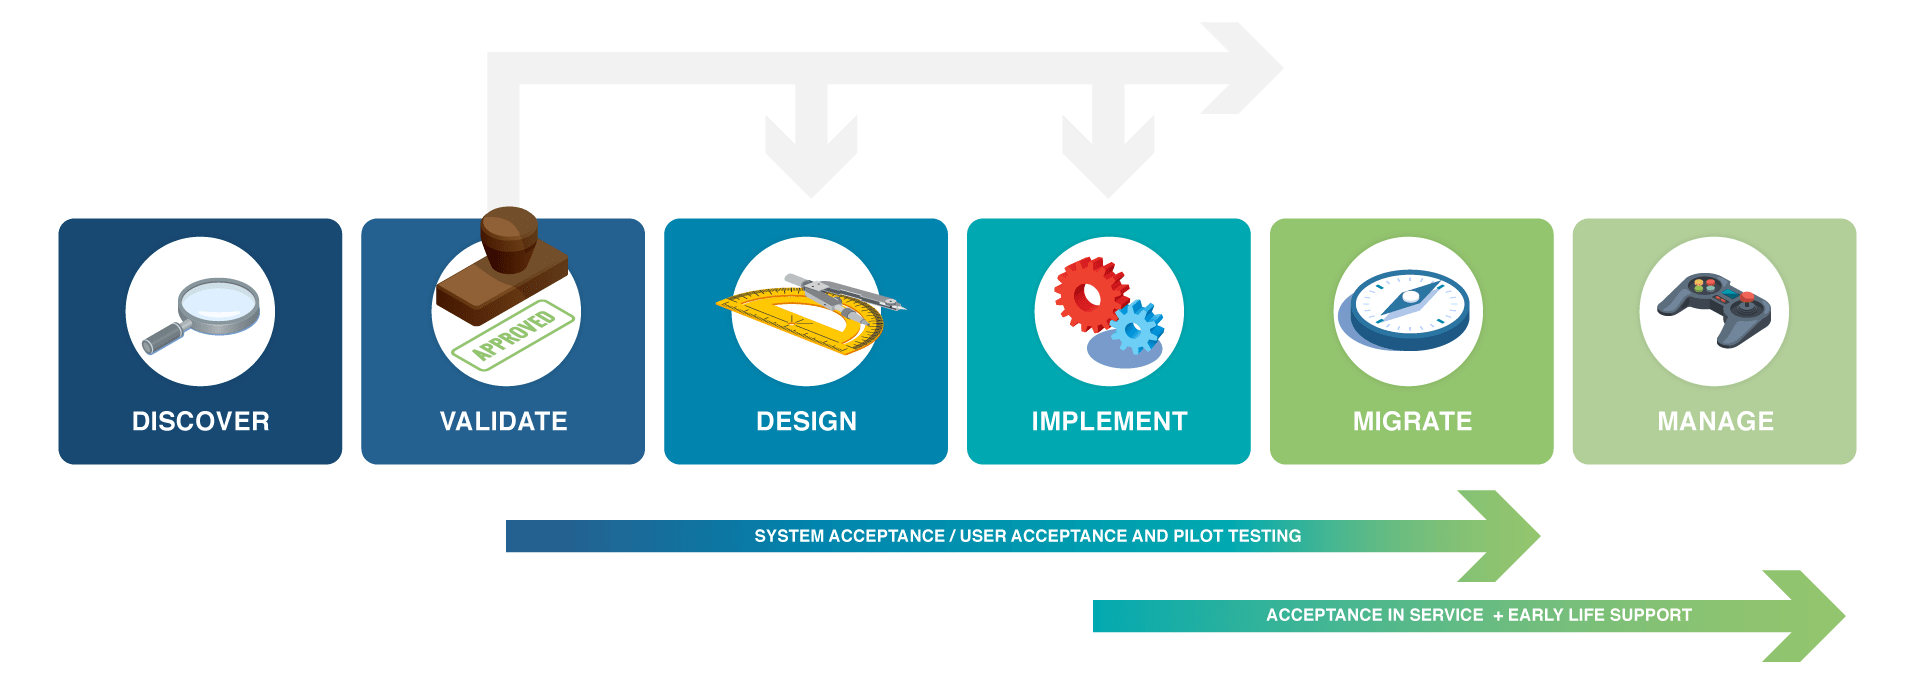 Professional Services Lifecycle Engagement